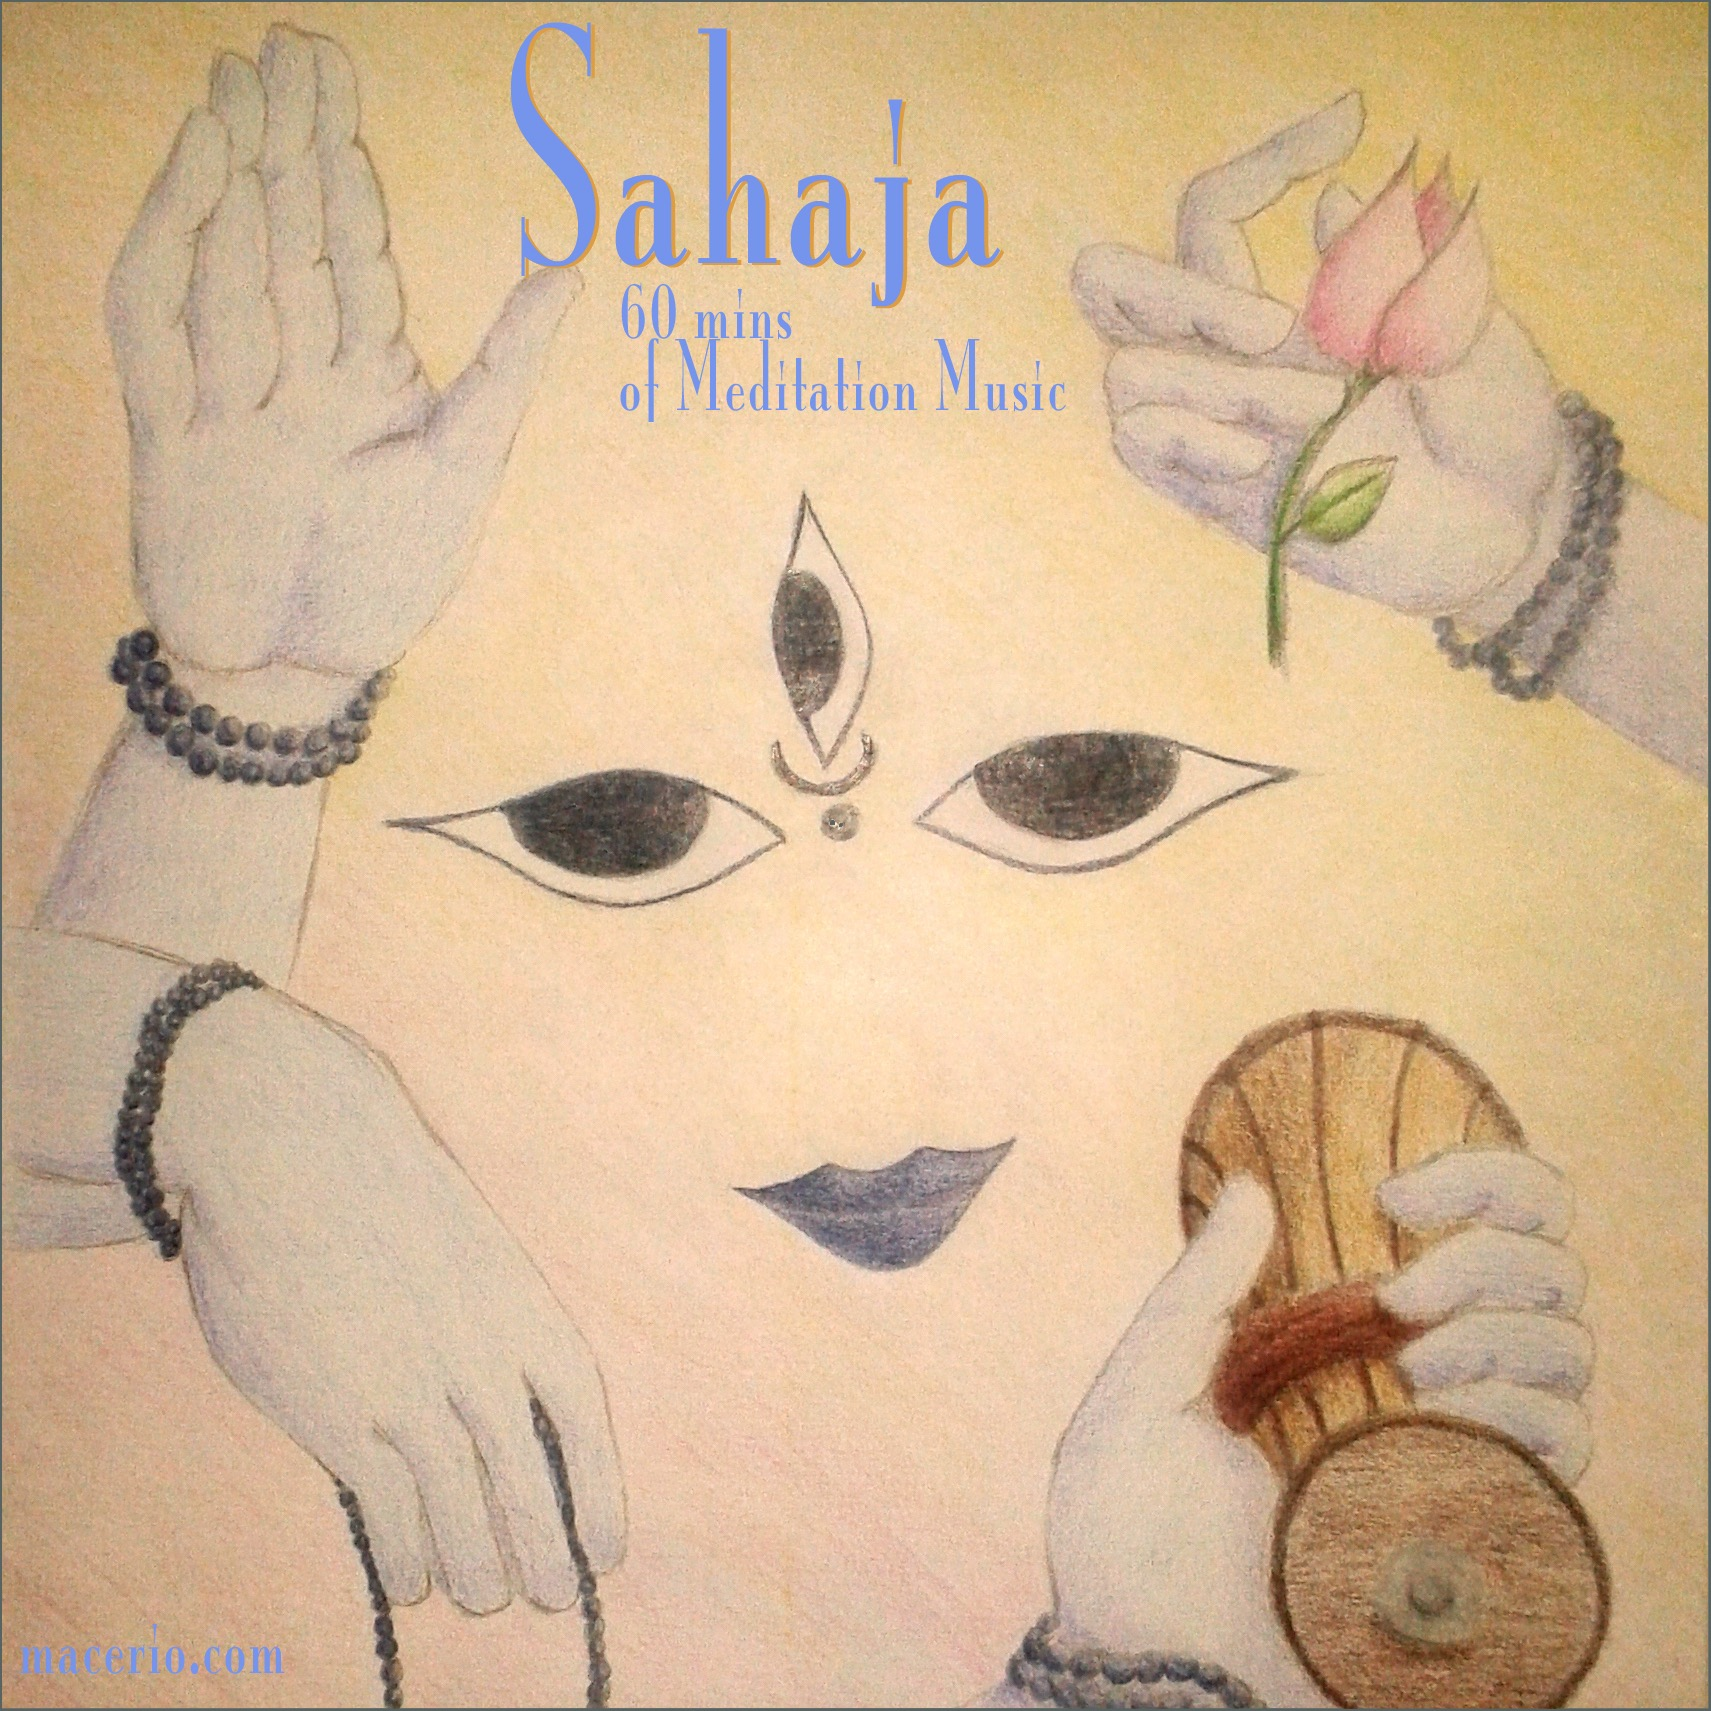 Sahaja - Meditation Music by Macerio